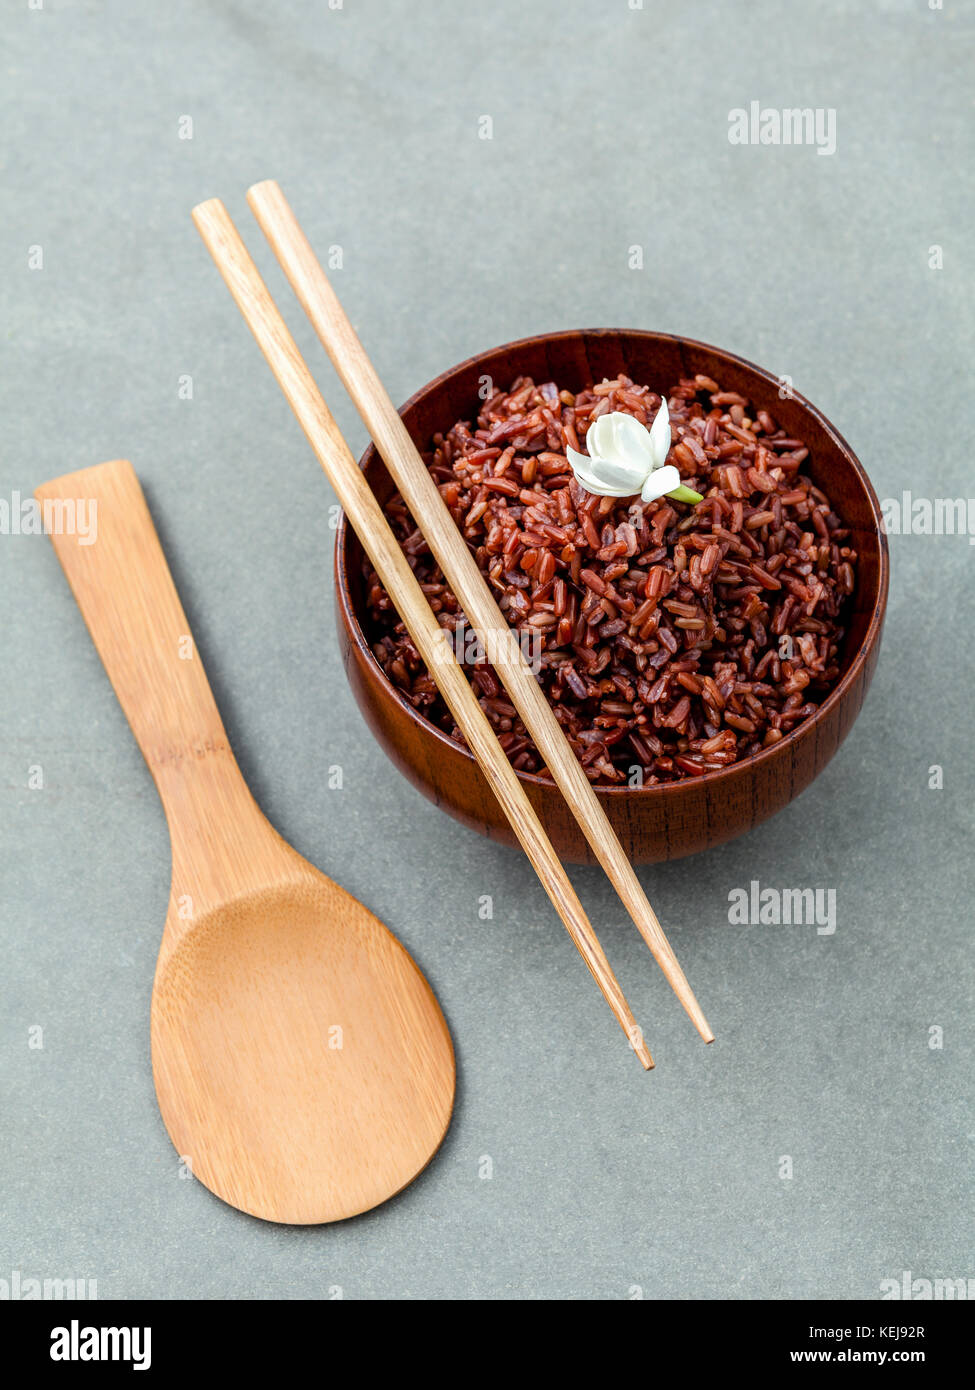 Steamed traditional thai rice in bowl with spoon high fiber and vitamin E for dietary and healthy food. - Stock Image